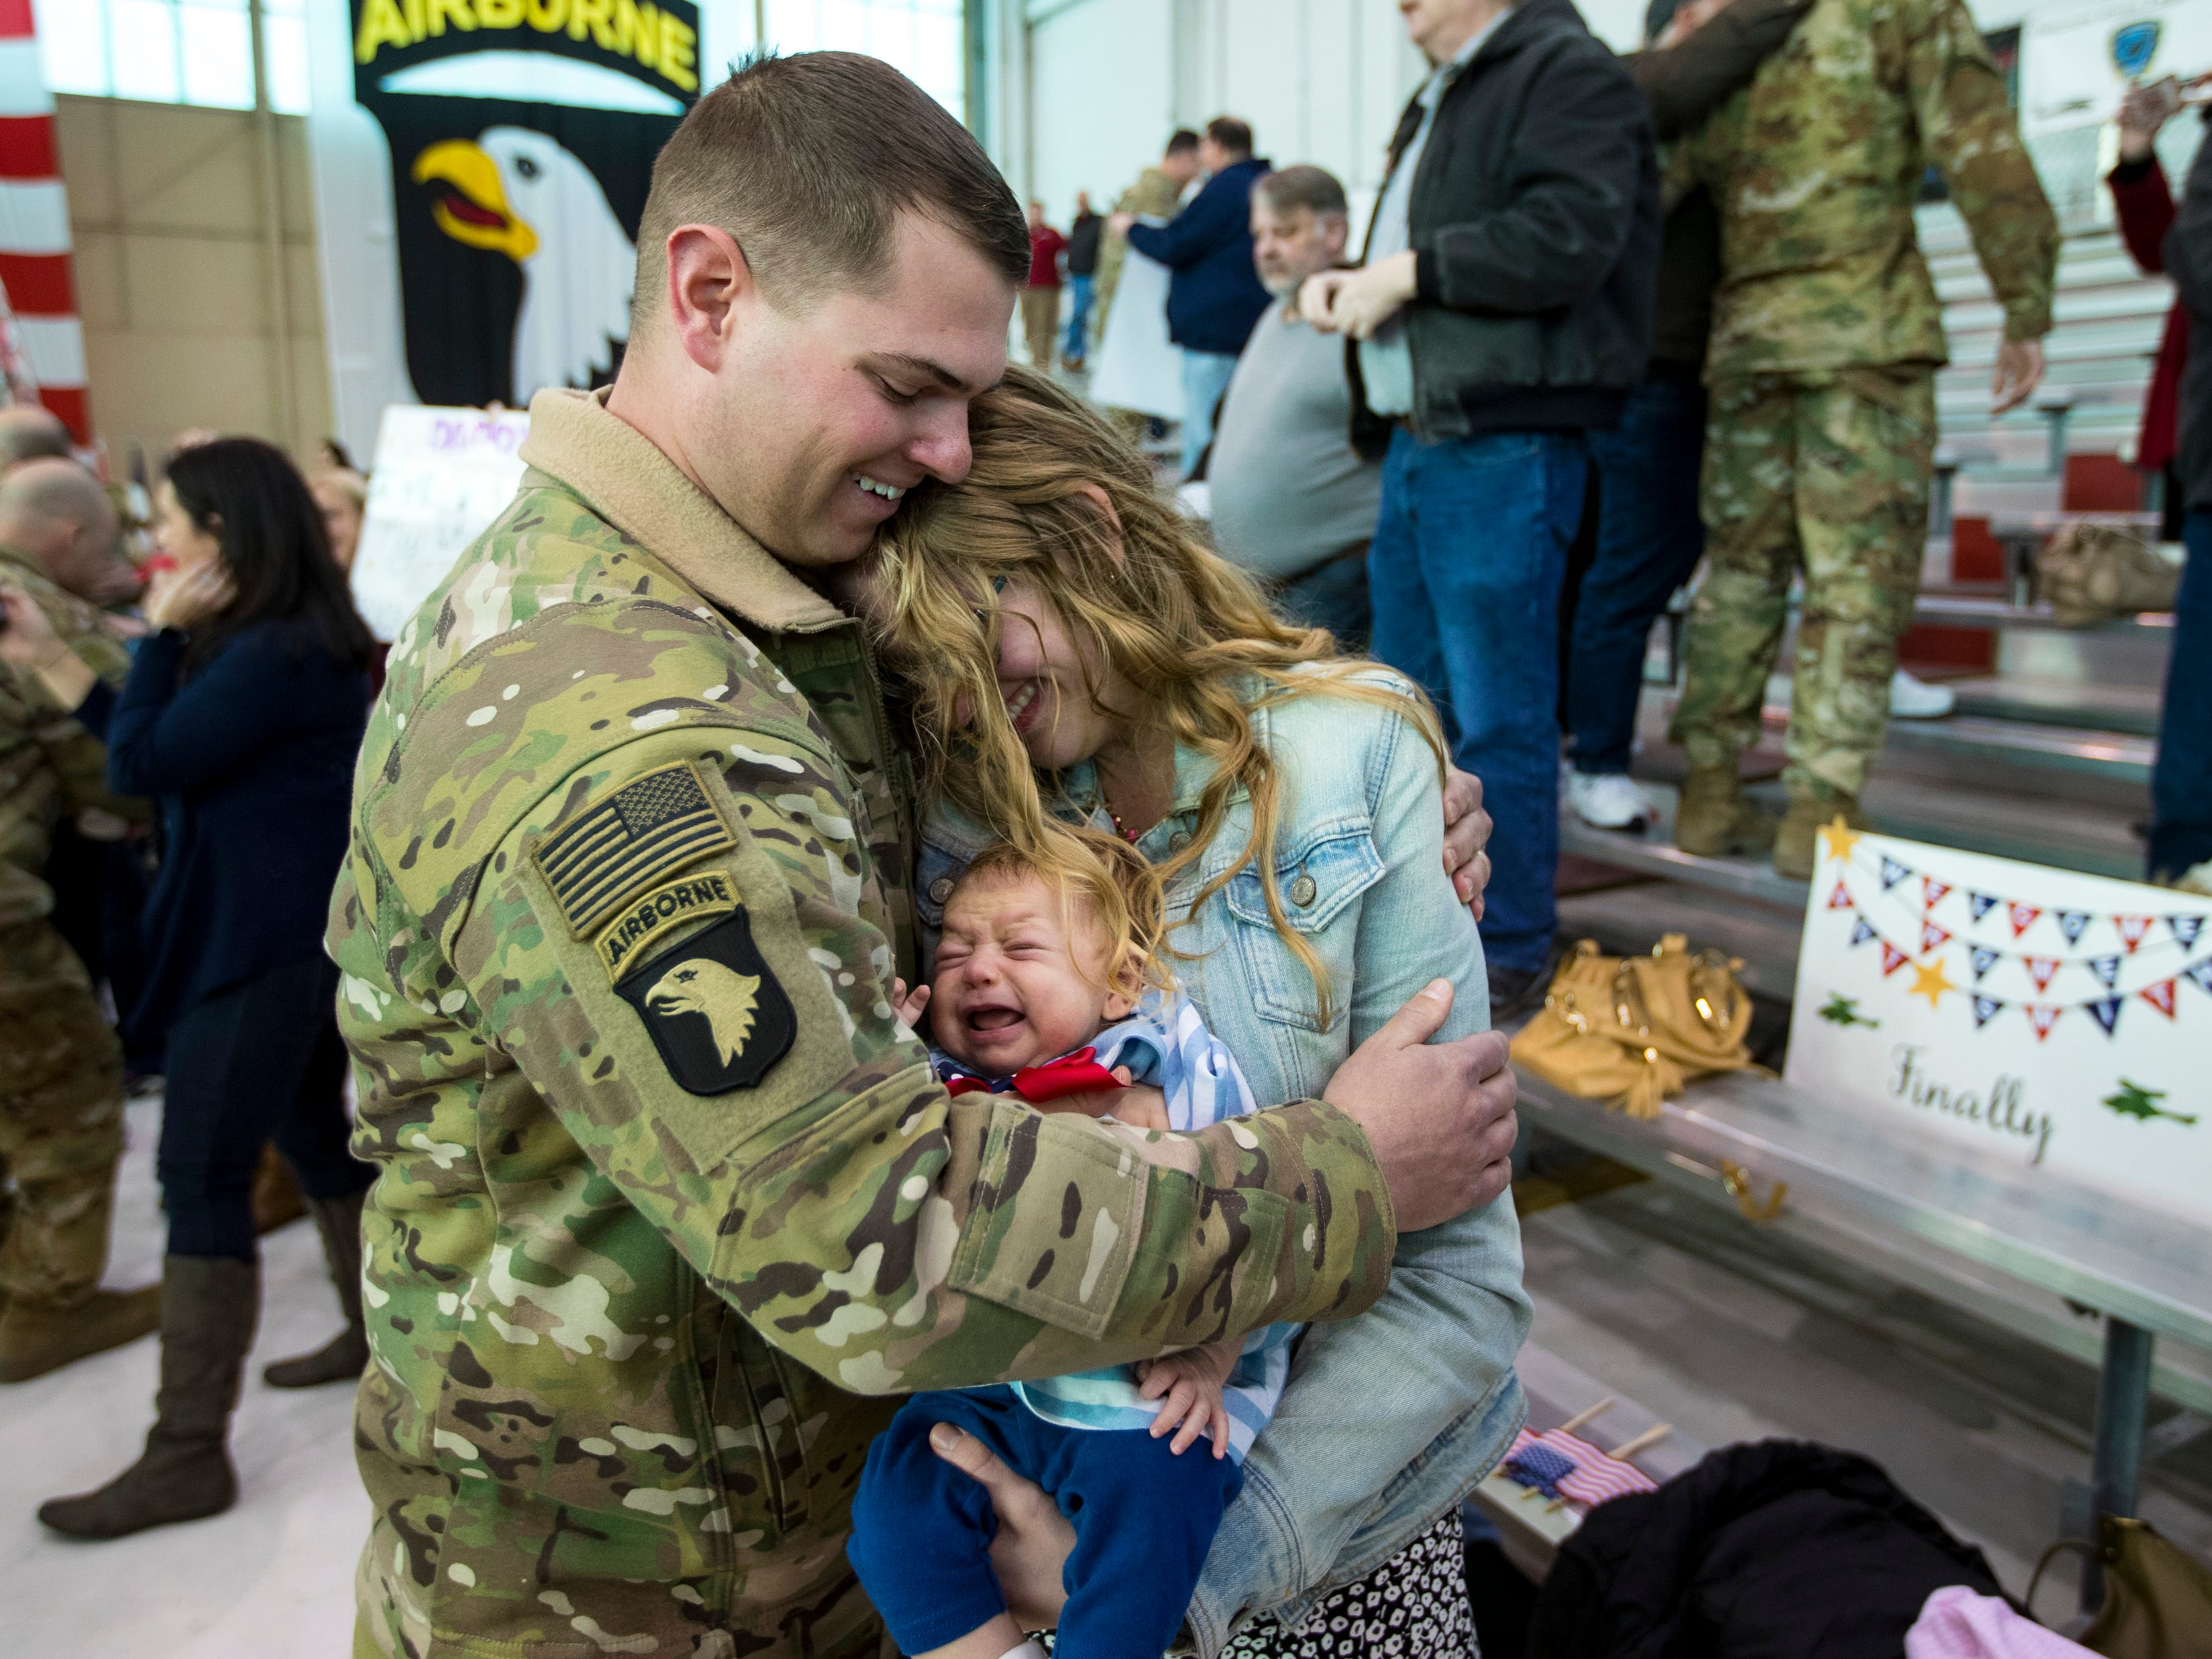 Staff Sgt. R.J. Paski holds his wife Sarah Paski and his newborn Gianna Paski, 2 months, during a homecoming ceremony for members of the 101st Combat Aviation Brigade and 101st Sustainment Brigade at Fort Campbell in Clarksville on Thursday, Feb. 21, 2019. The soldiers were returning from a nine-month deployment to Afghanistan.